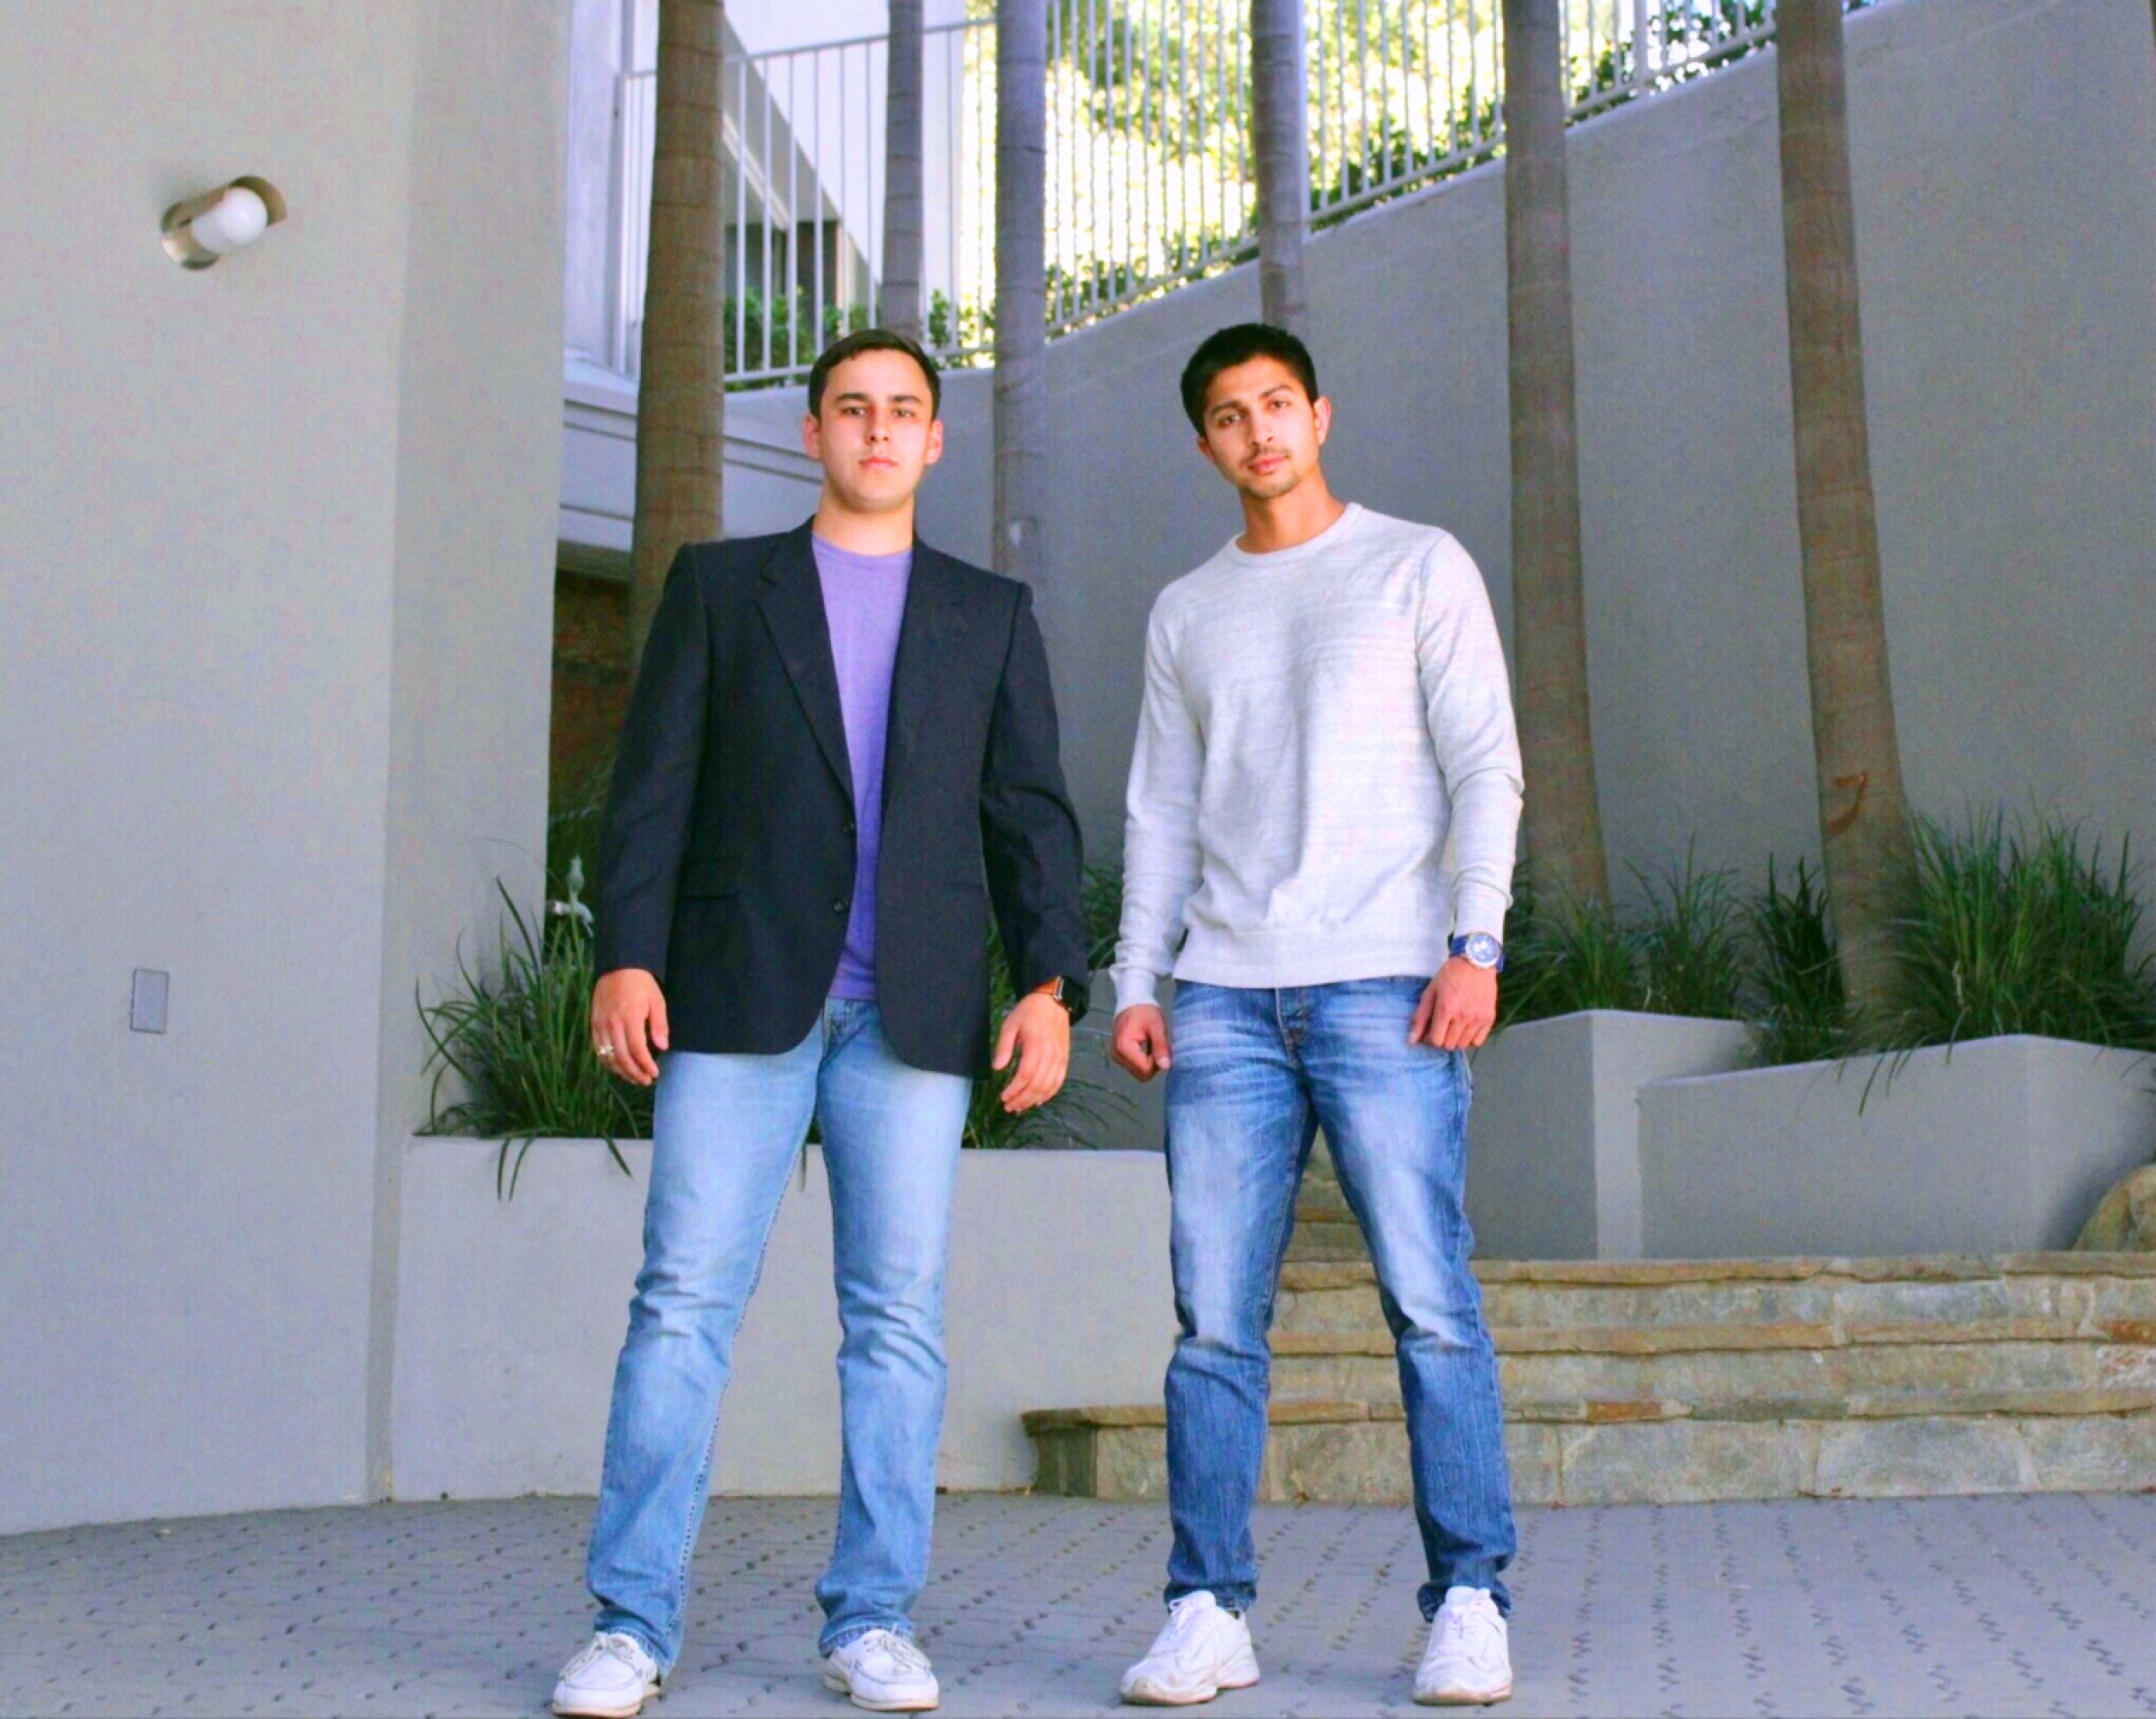 About The Founders of Pyro Equity